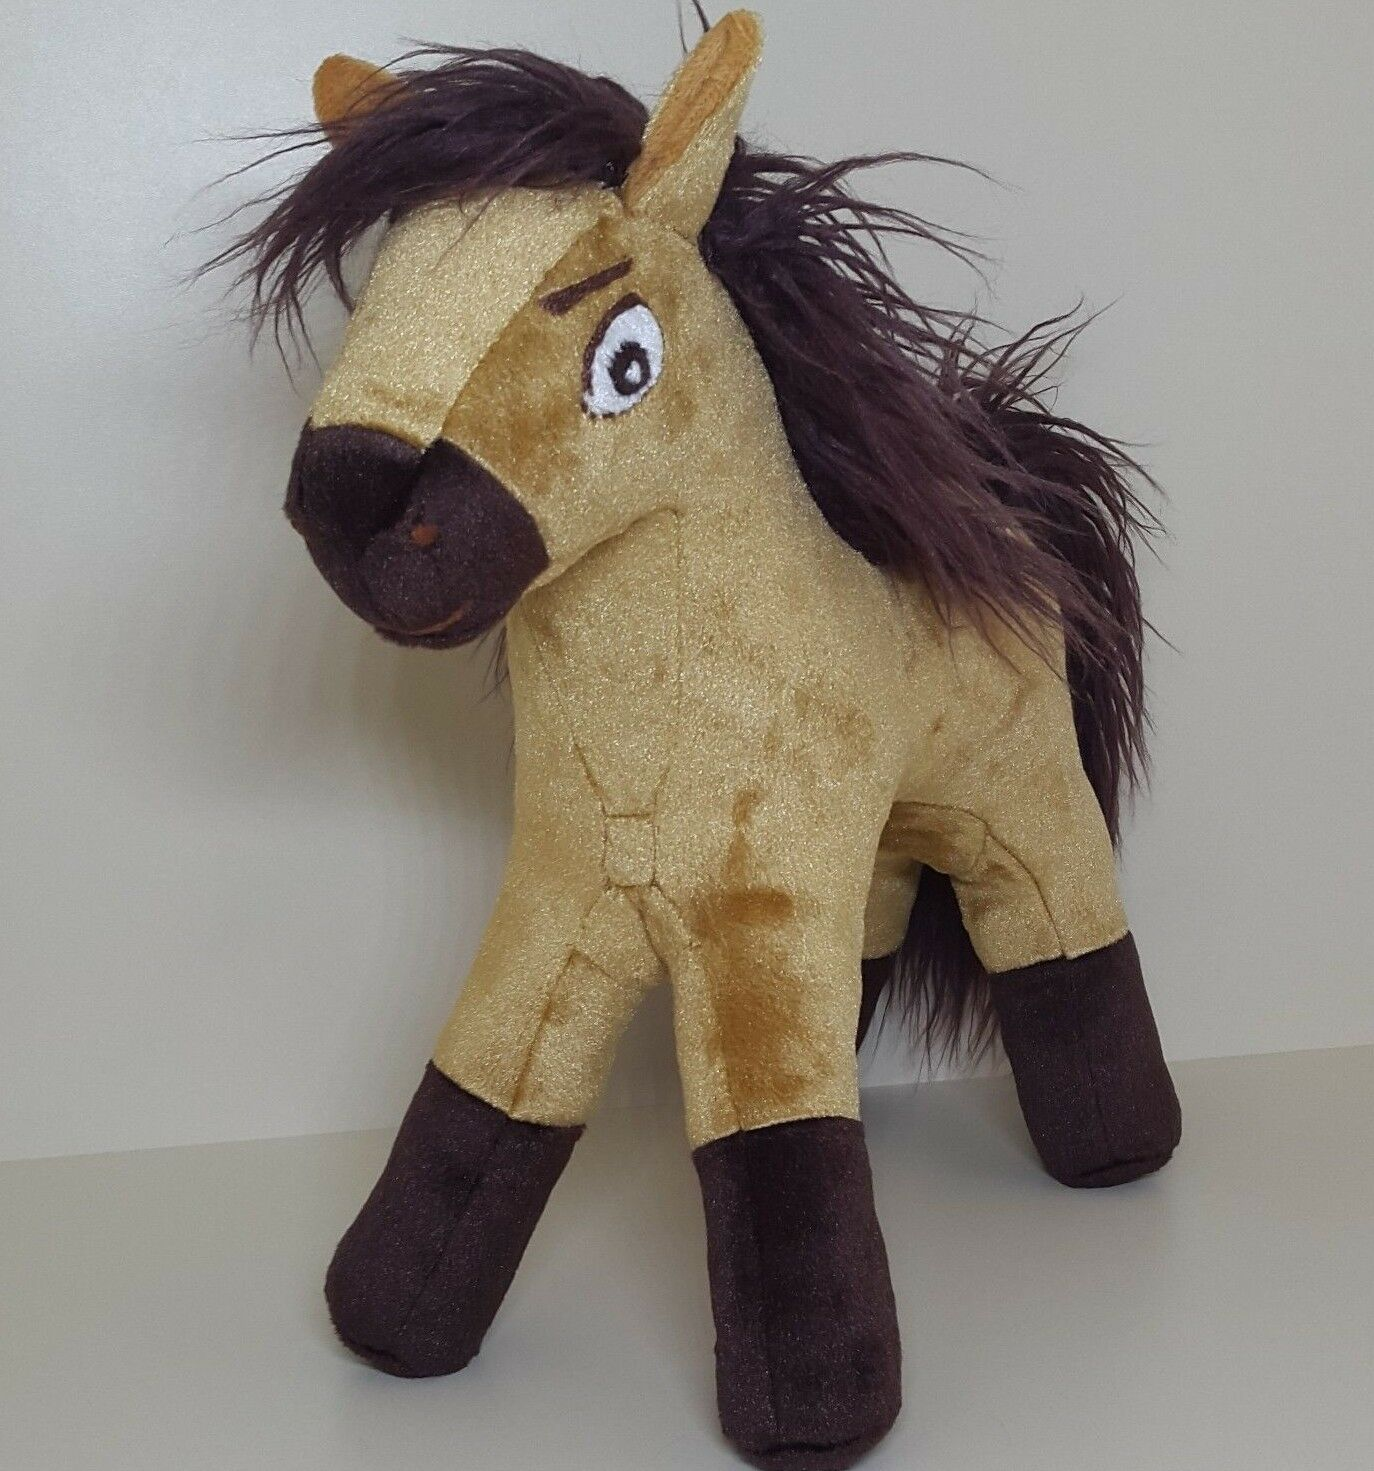 Spirit stallion of the cibrown horse plush toy plushie stuff animal